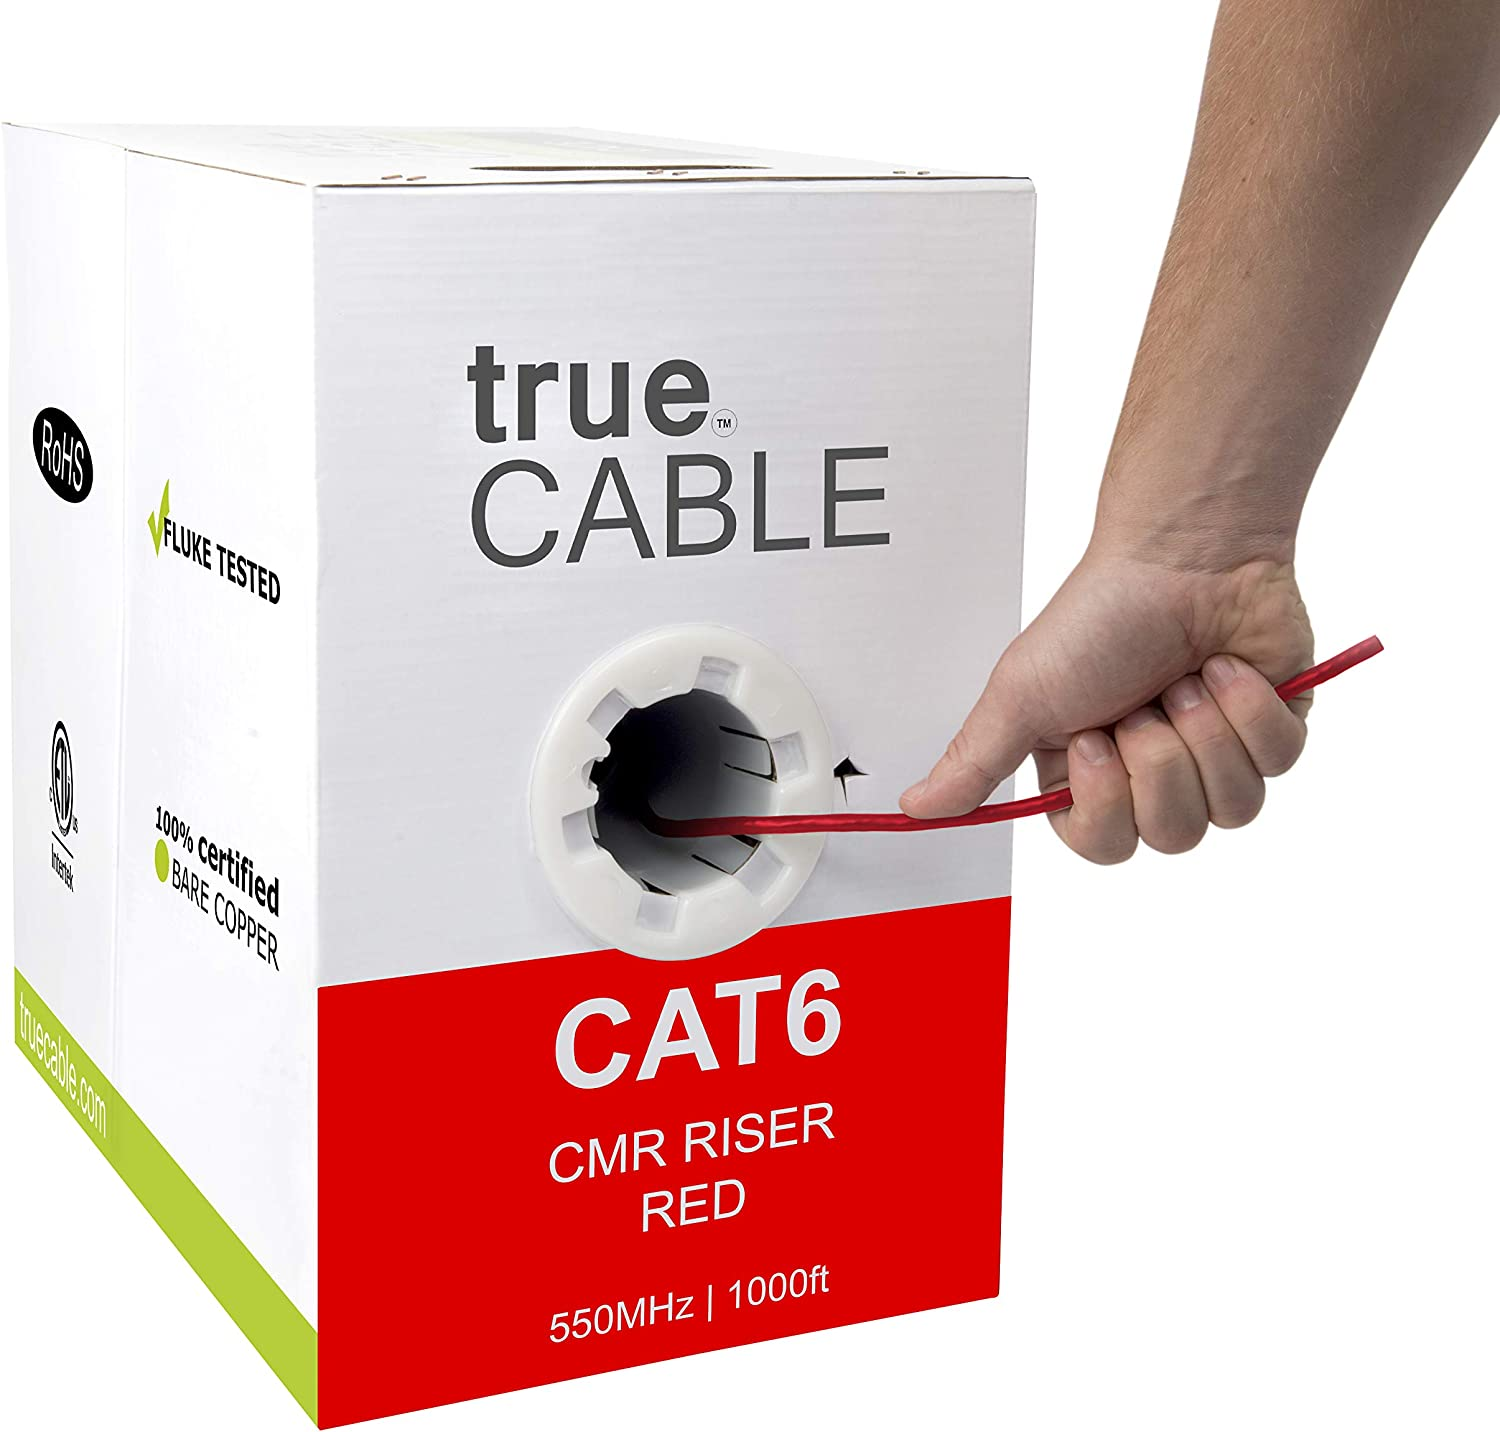 NO SPLINE 23 AWG Copper CAT6 CMR Ethernet Network Cable Red 1000FT